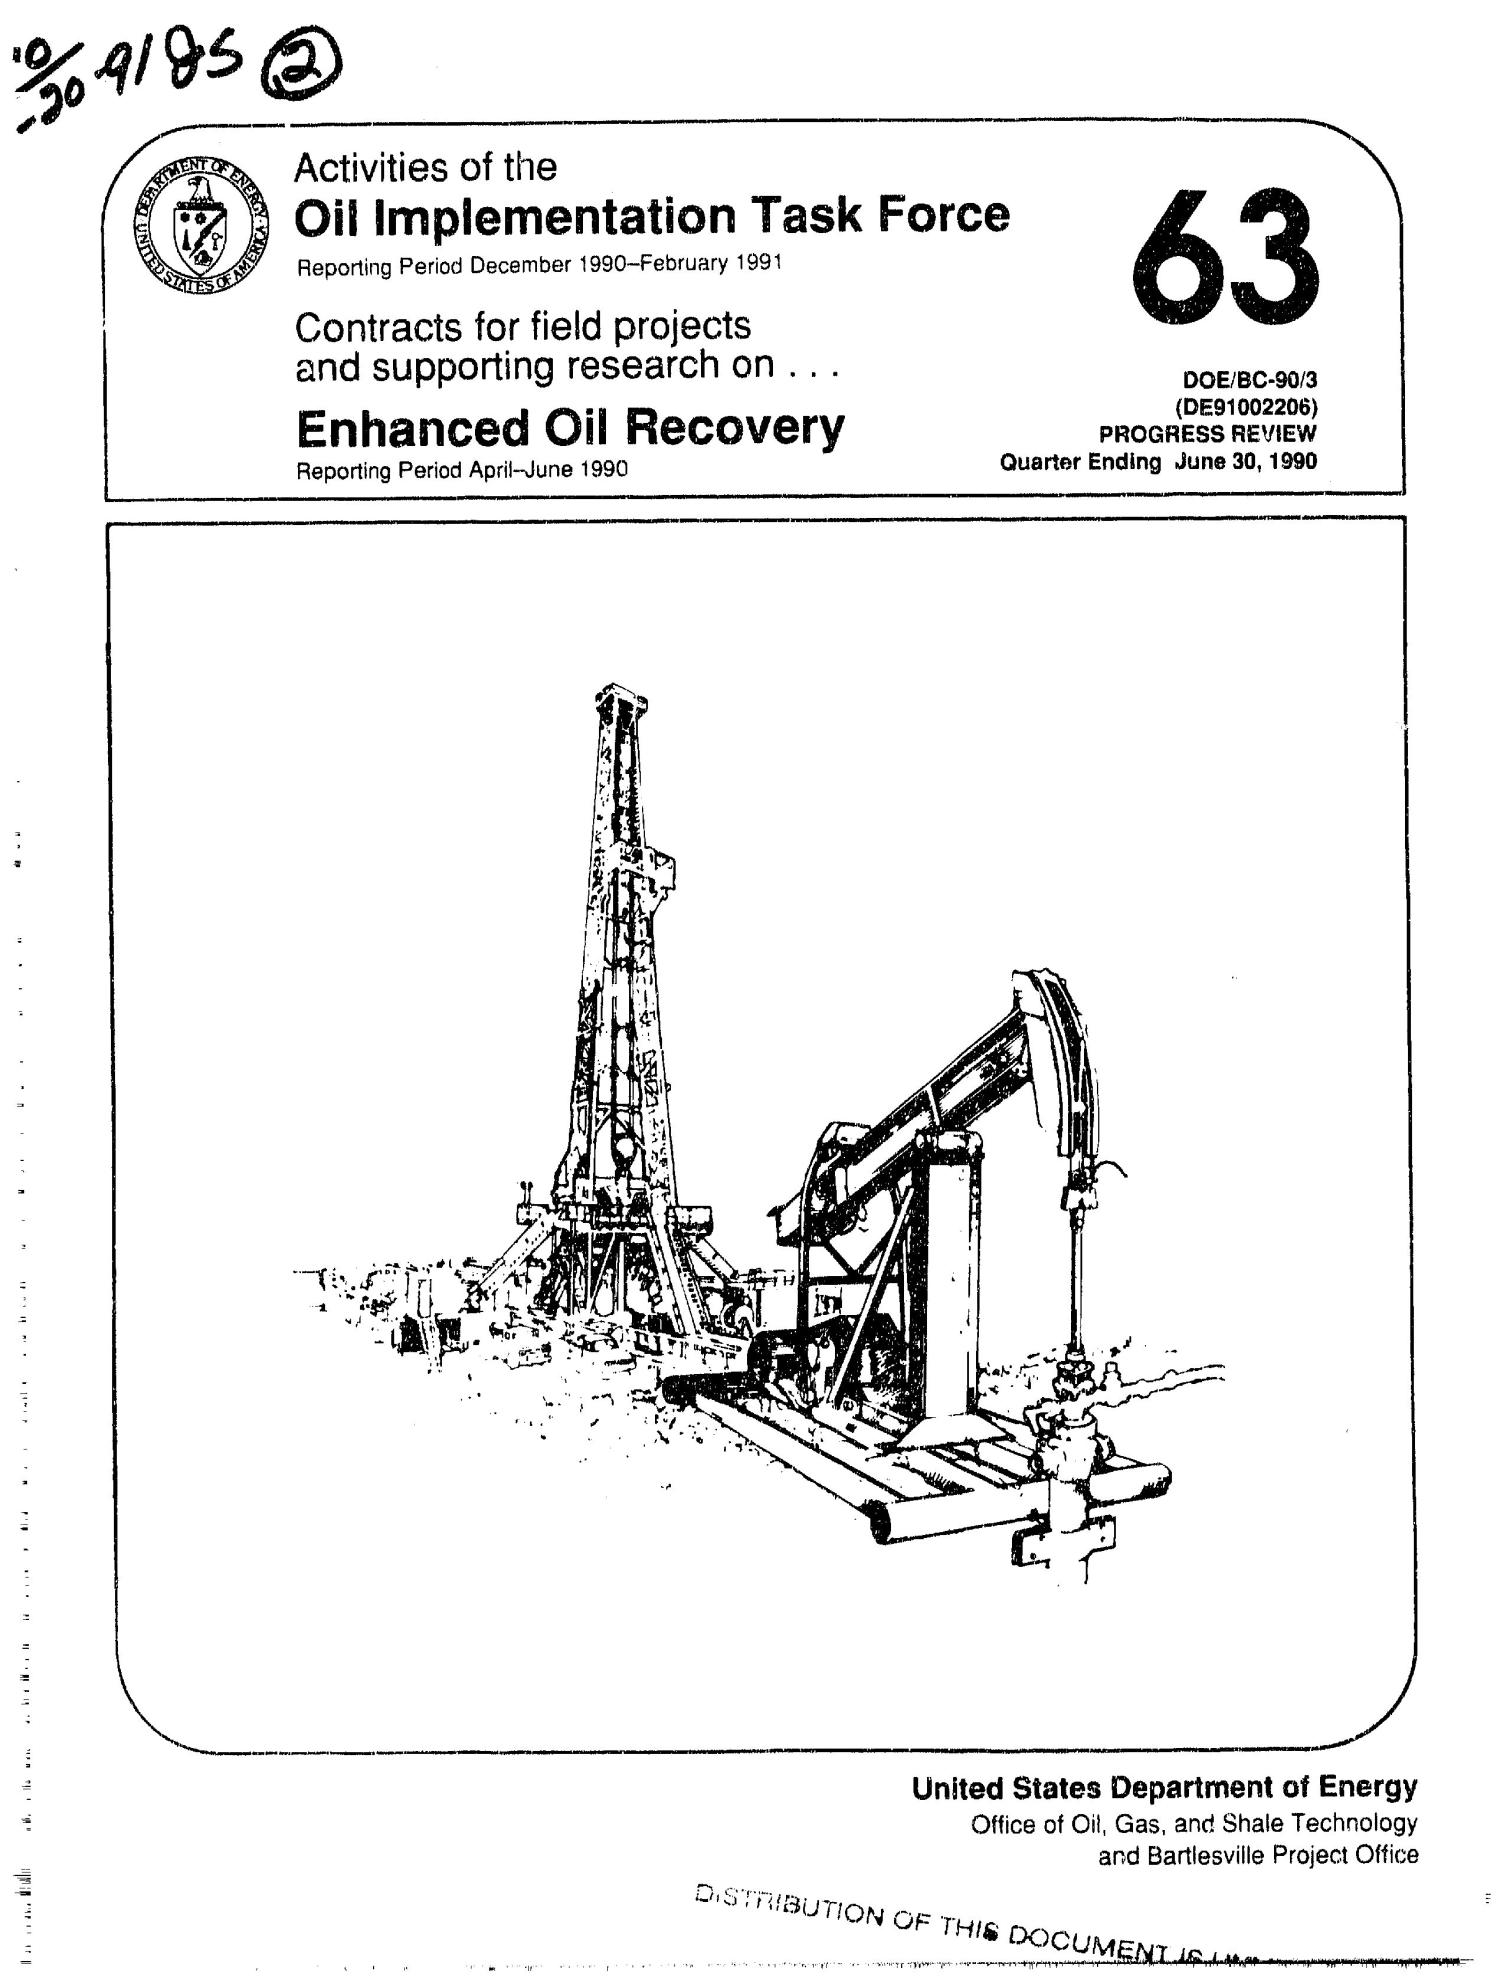 Activities of the Oil Implementation Task Force, December 1990--February 1991; Contracts for field projects and supporting research on enhanced oil recovery, April--June 1990                                                                                                      [Sequence #]: 1 of 164